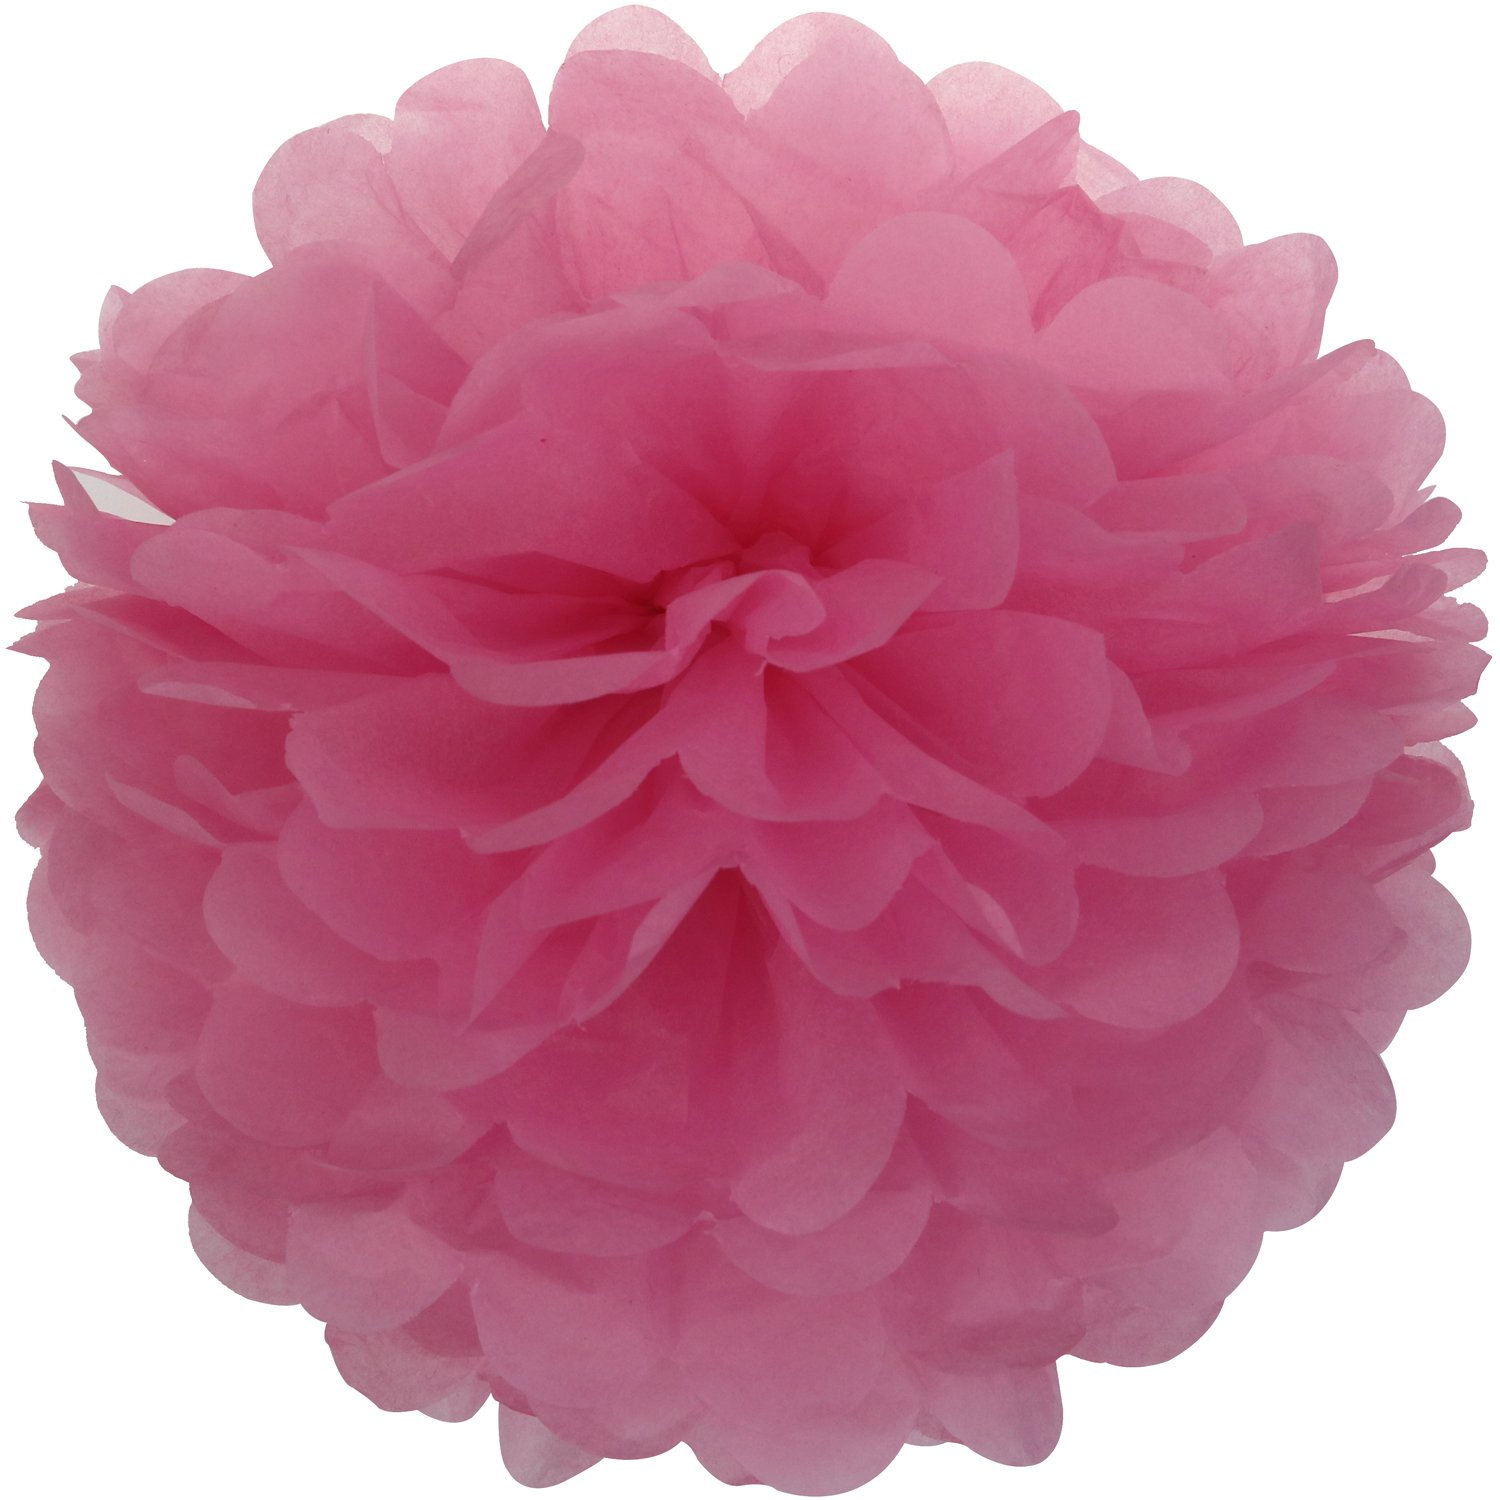 Lightingsky 10pcs Tissue Paper Pom Poms DIY Decorative Flowers Ball Perfect for Party Wedding Home Outdoor Decoration Red, 12 inch